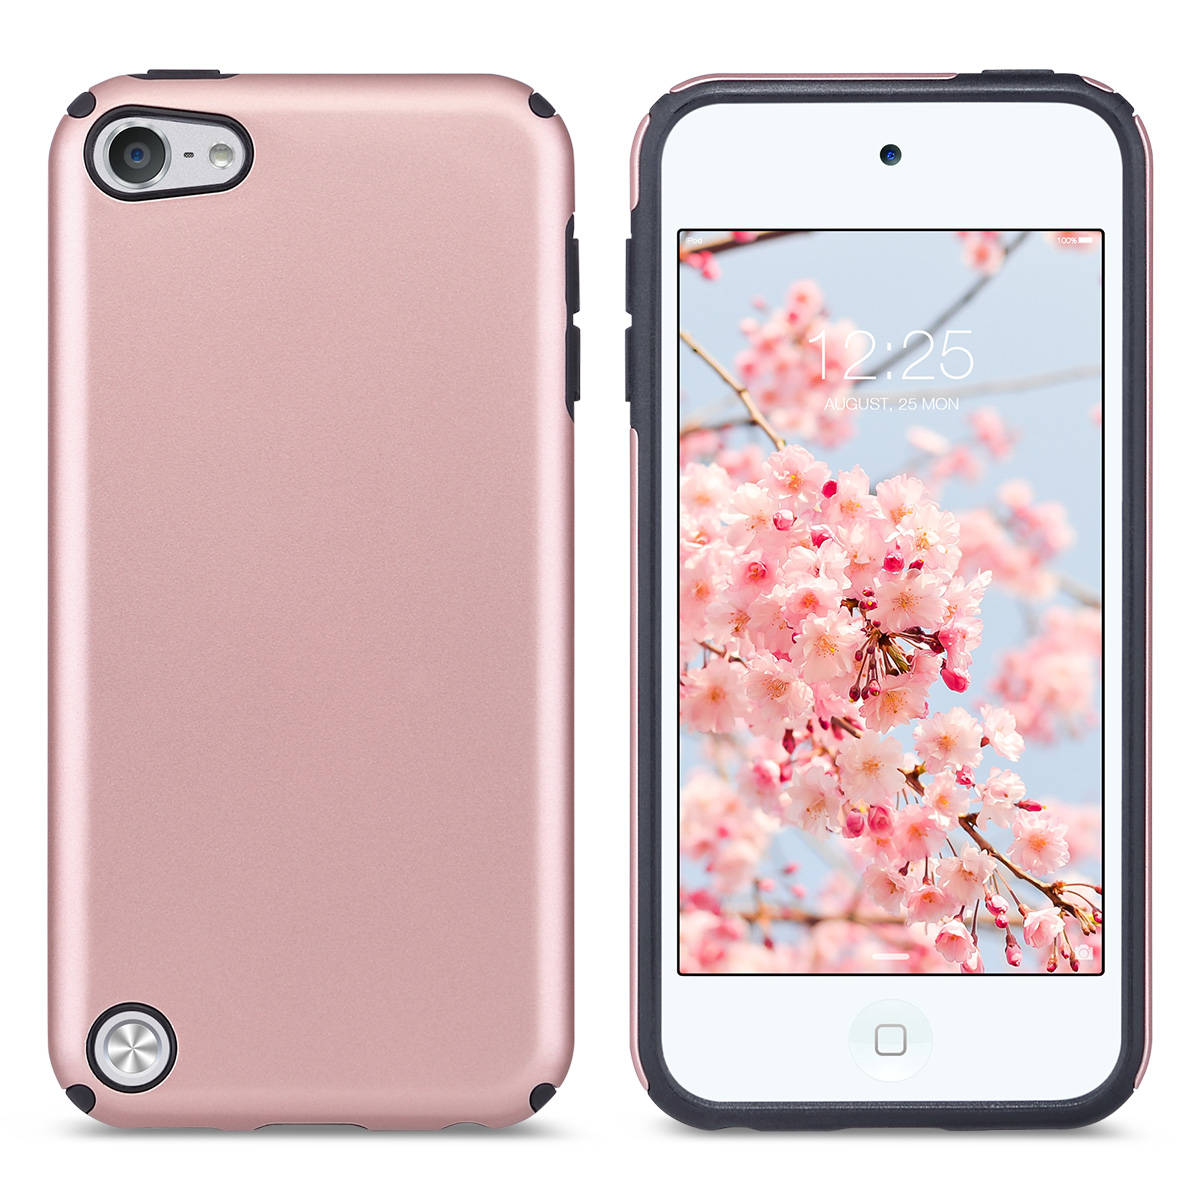 Hybrid-Hard-Protective-Silicon-TPU-Case-for-Apple-iPod-Touch-5-6th-Generation thumbnail 18